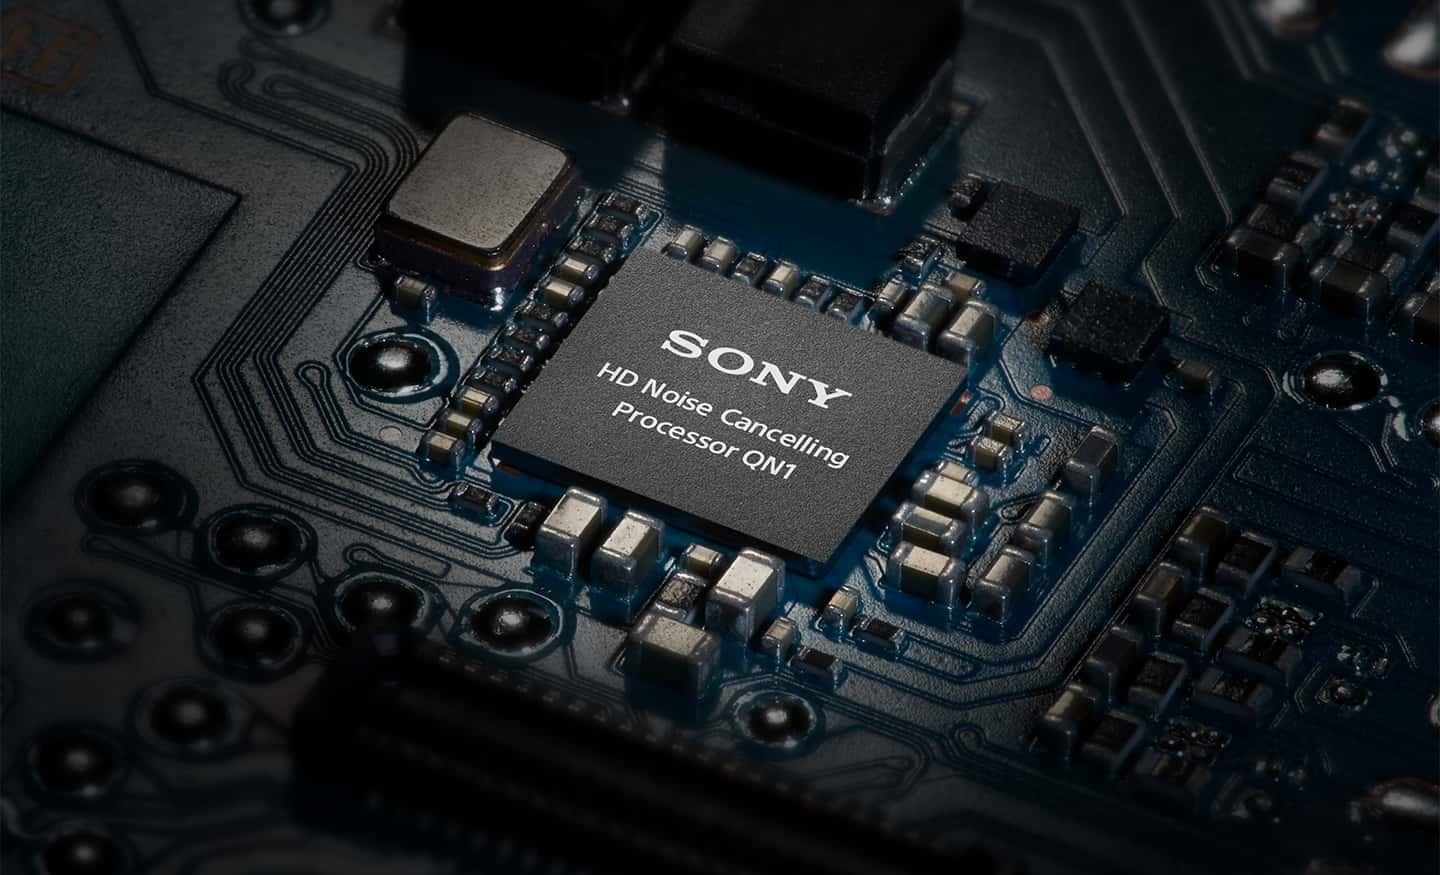 Sony HD Noise Cancelling Processor QN1